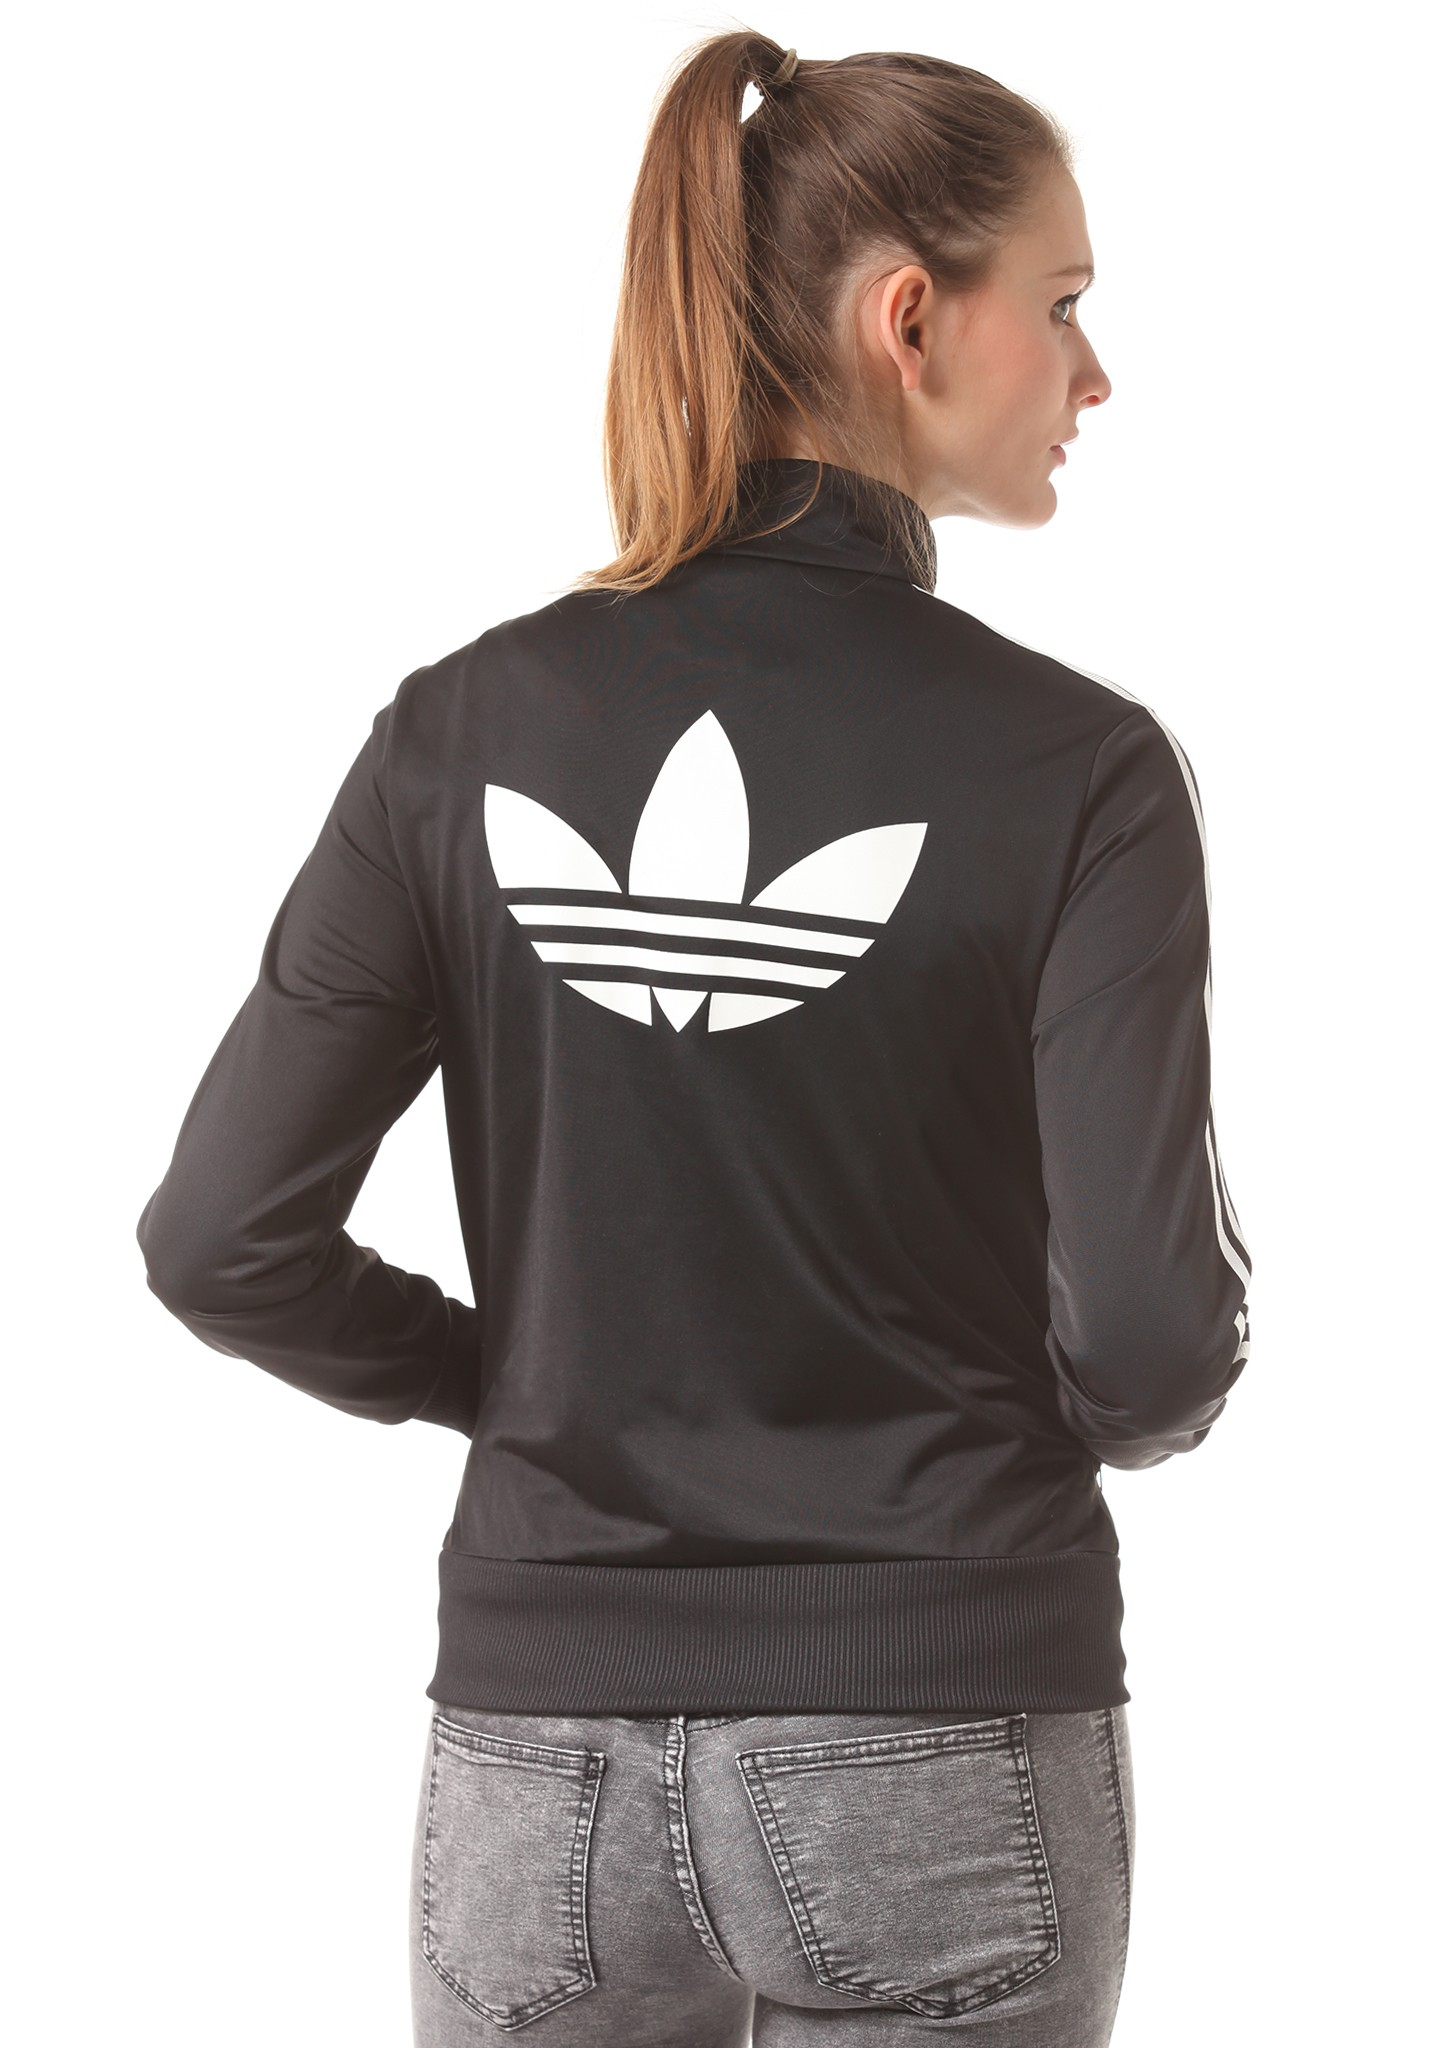 neu adidas firebird tracktop damen sweatjacke jacke ebay. Black Bedroom Furniture Sets. Home Design Ideas